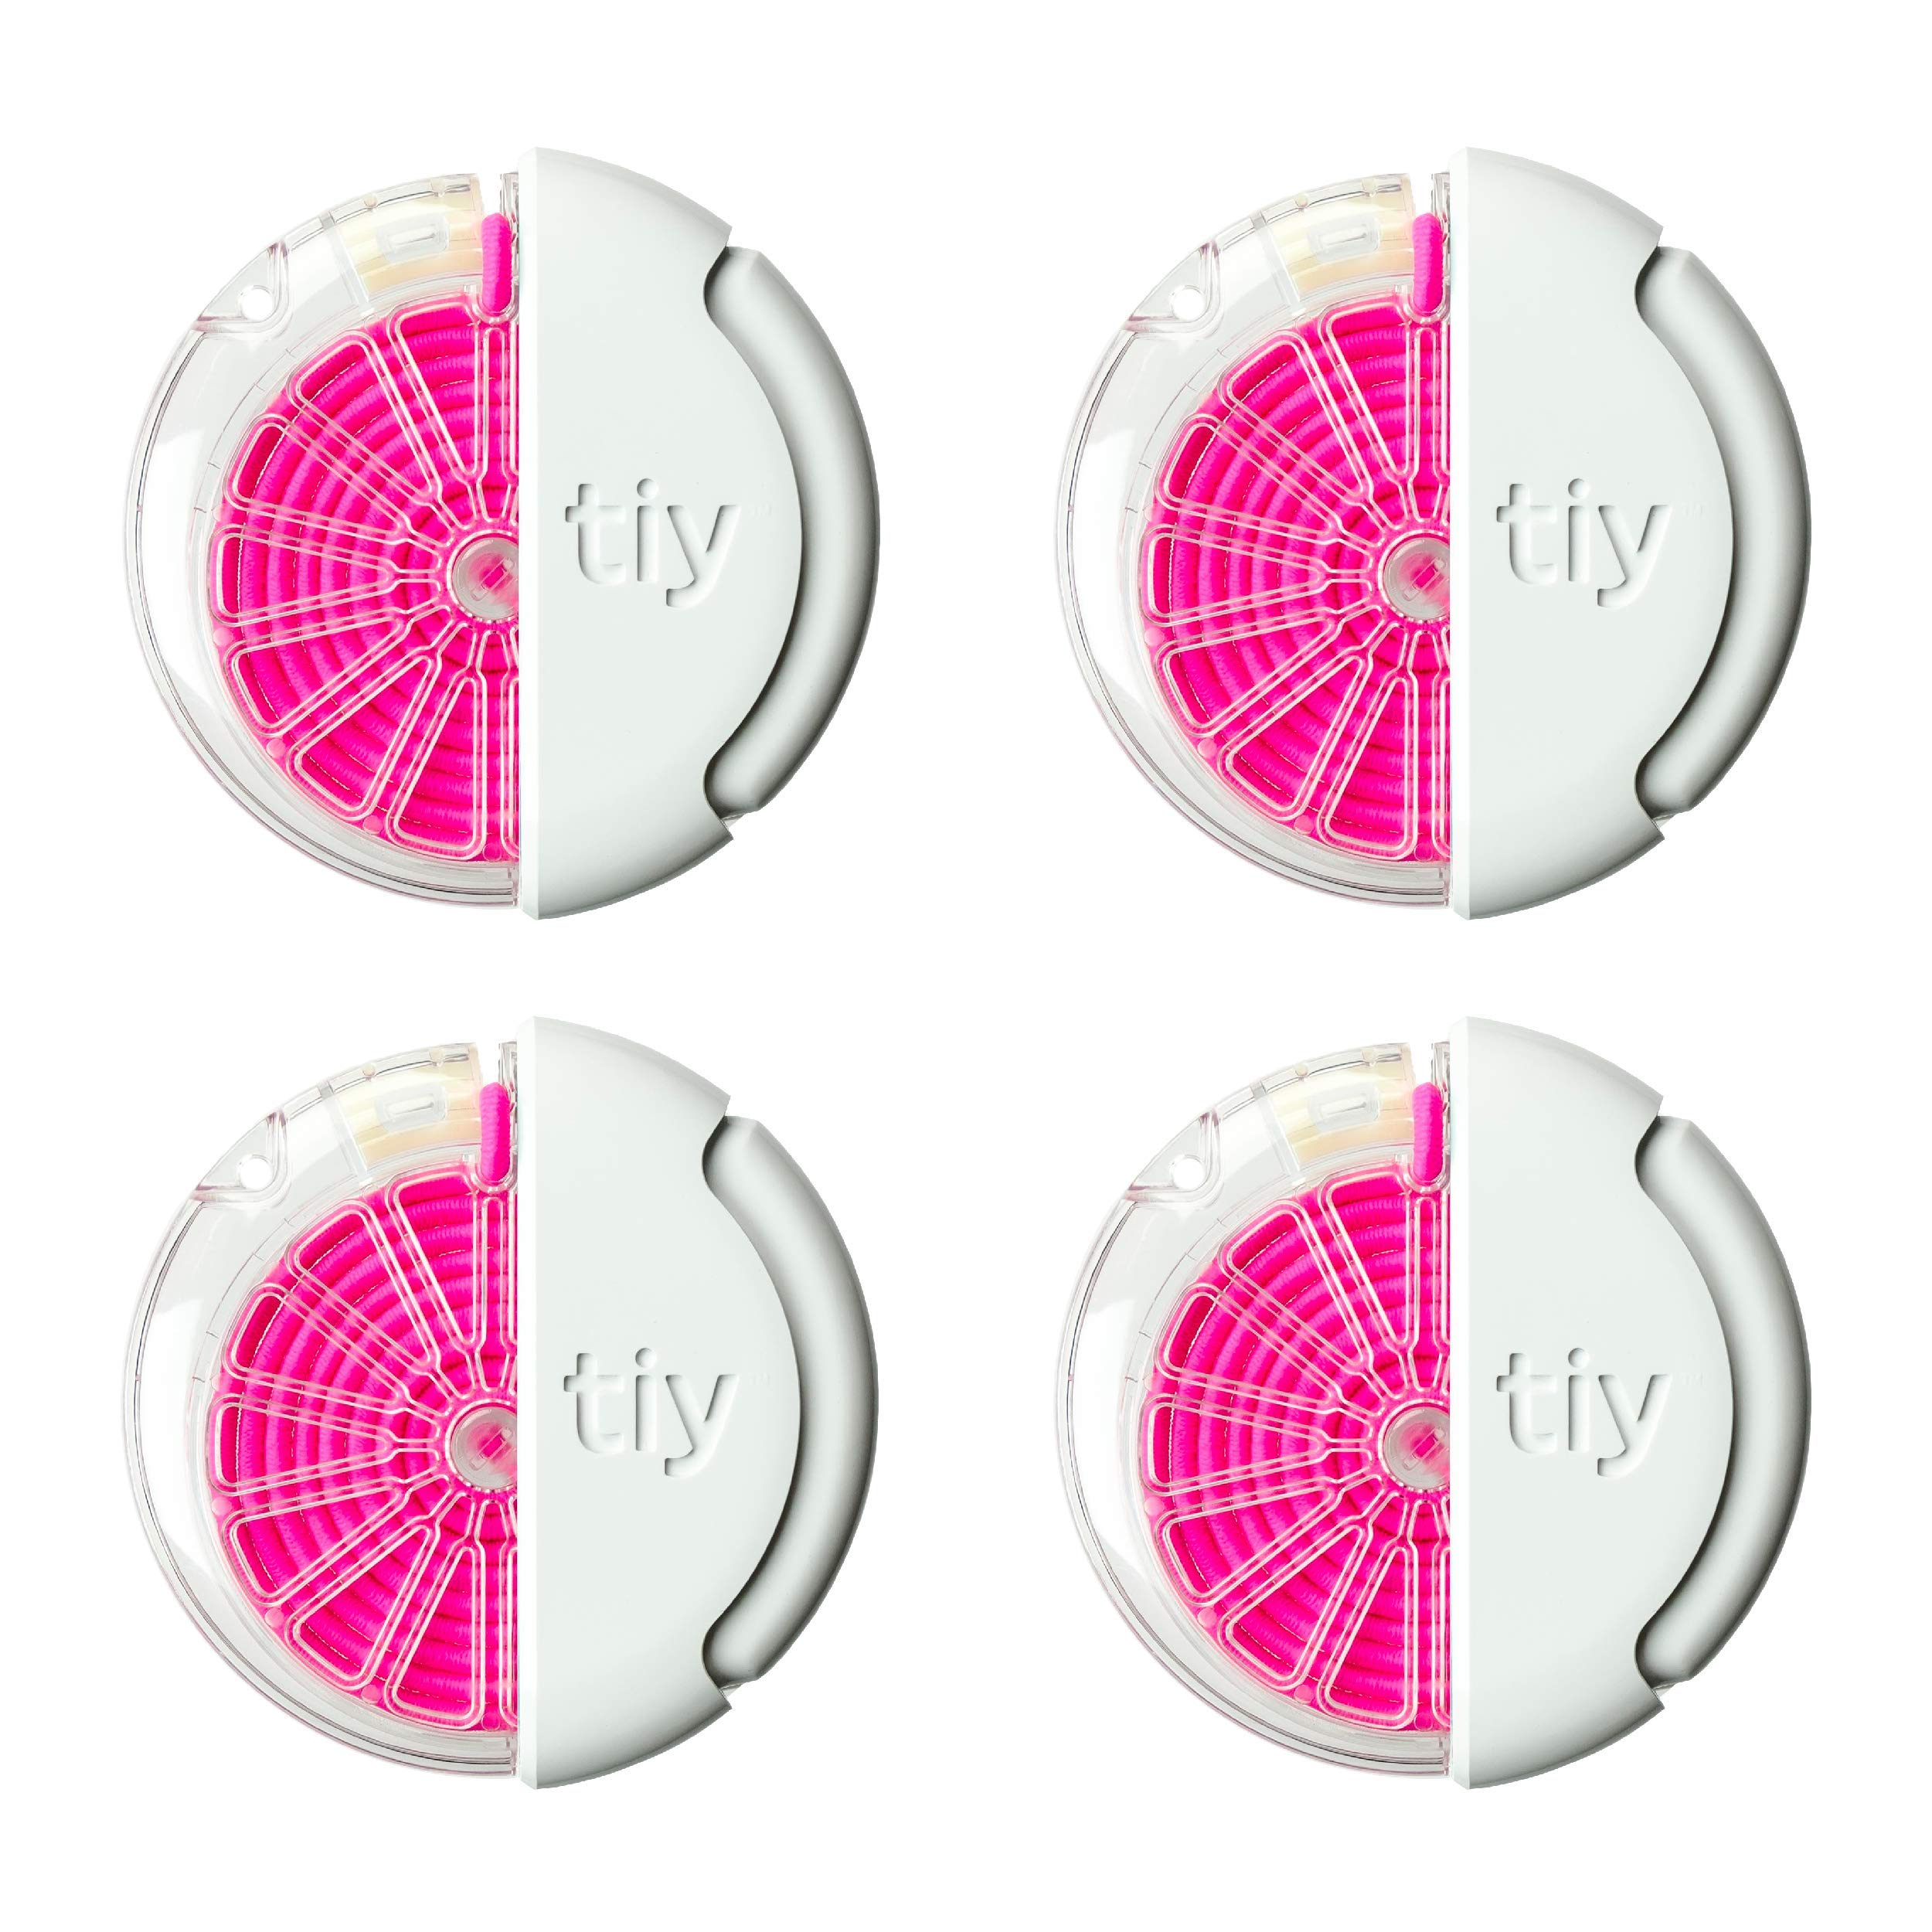 TIY Pro Customizable Elastic Hair Tie, 4-Pack, Electric Pink by TIY TIE-IT-YOURSELF